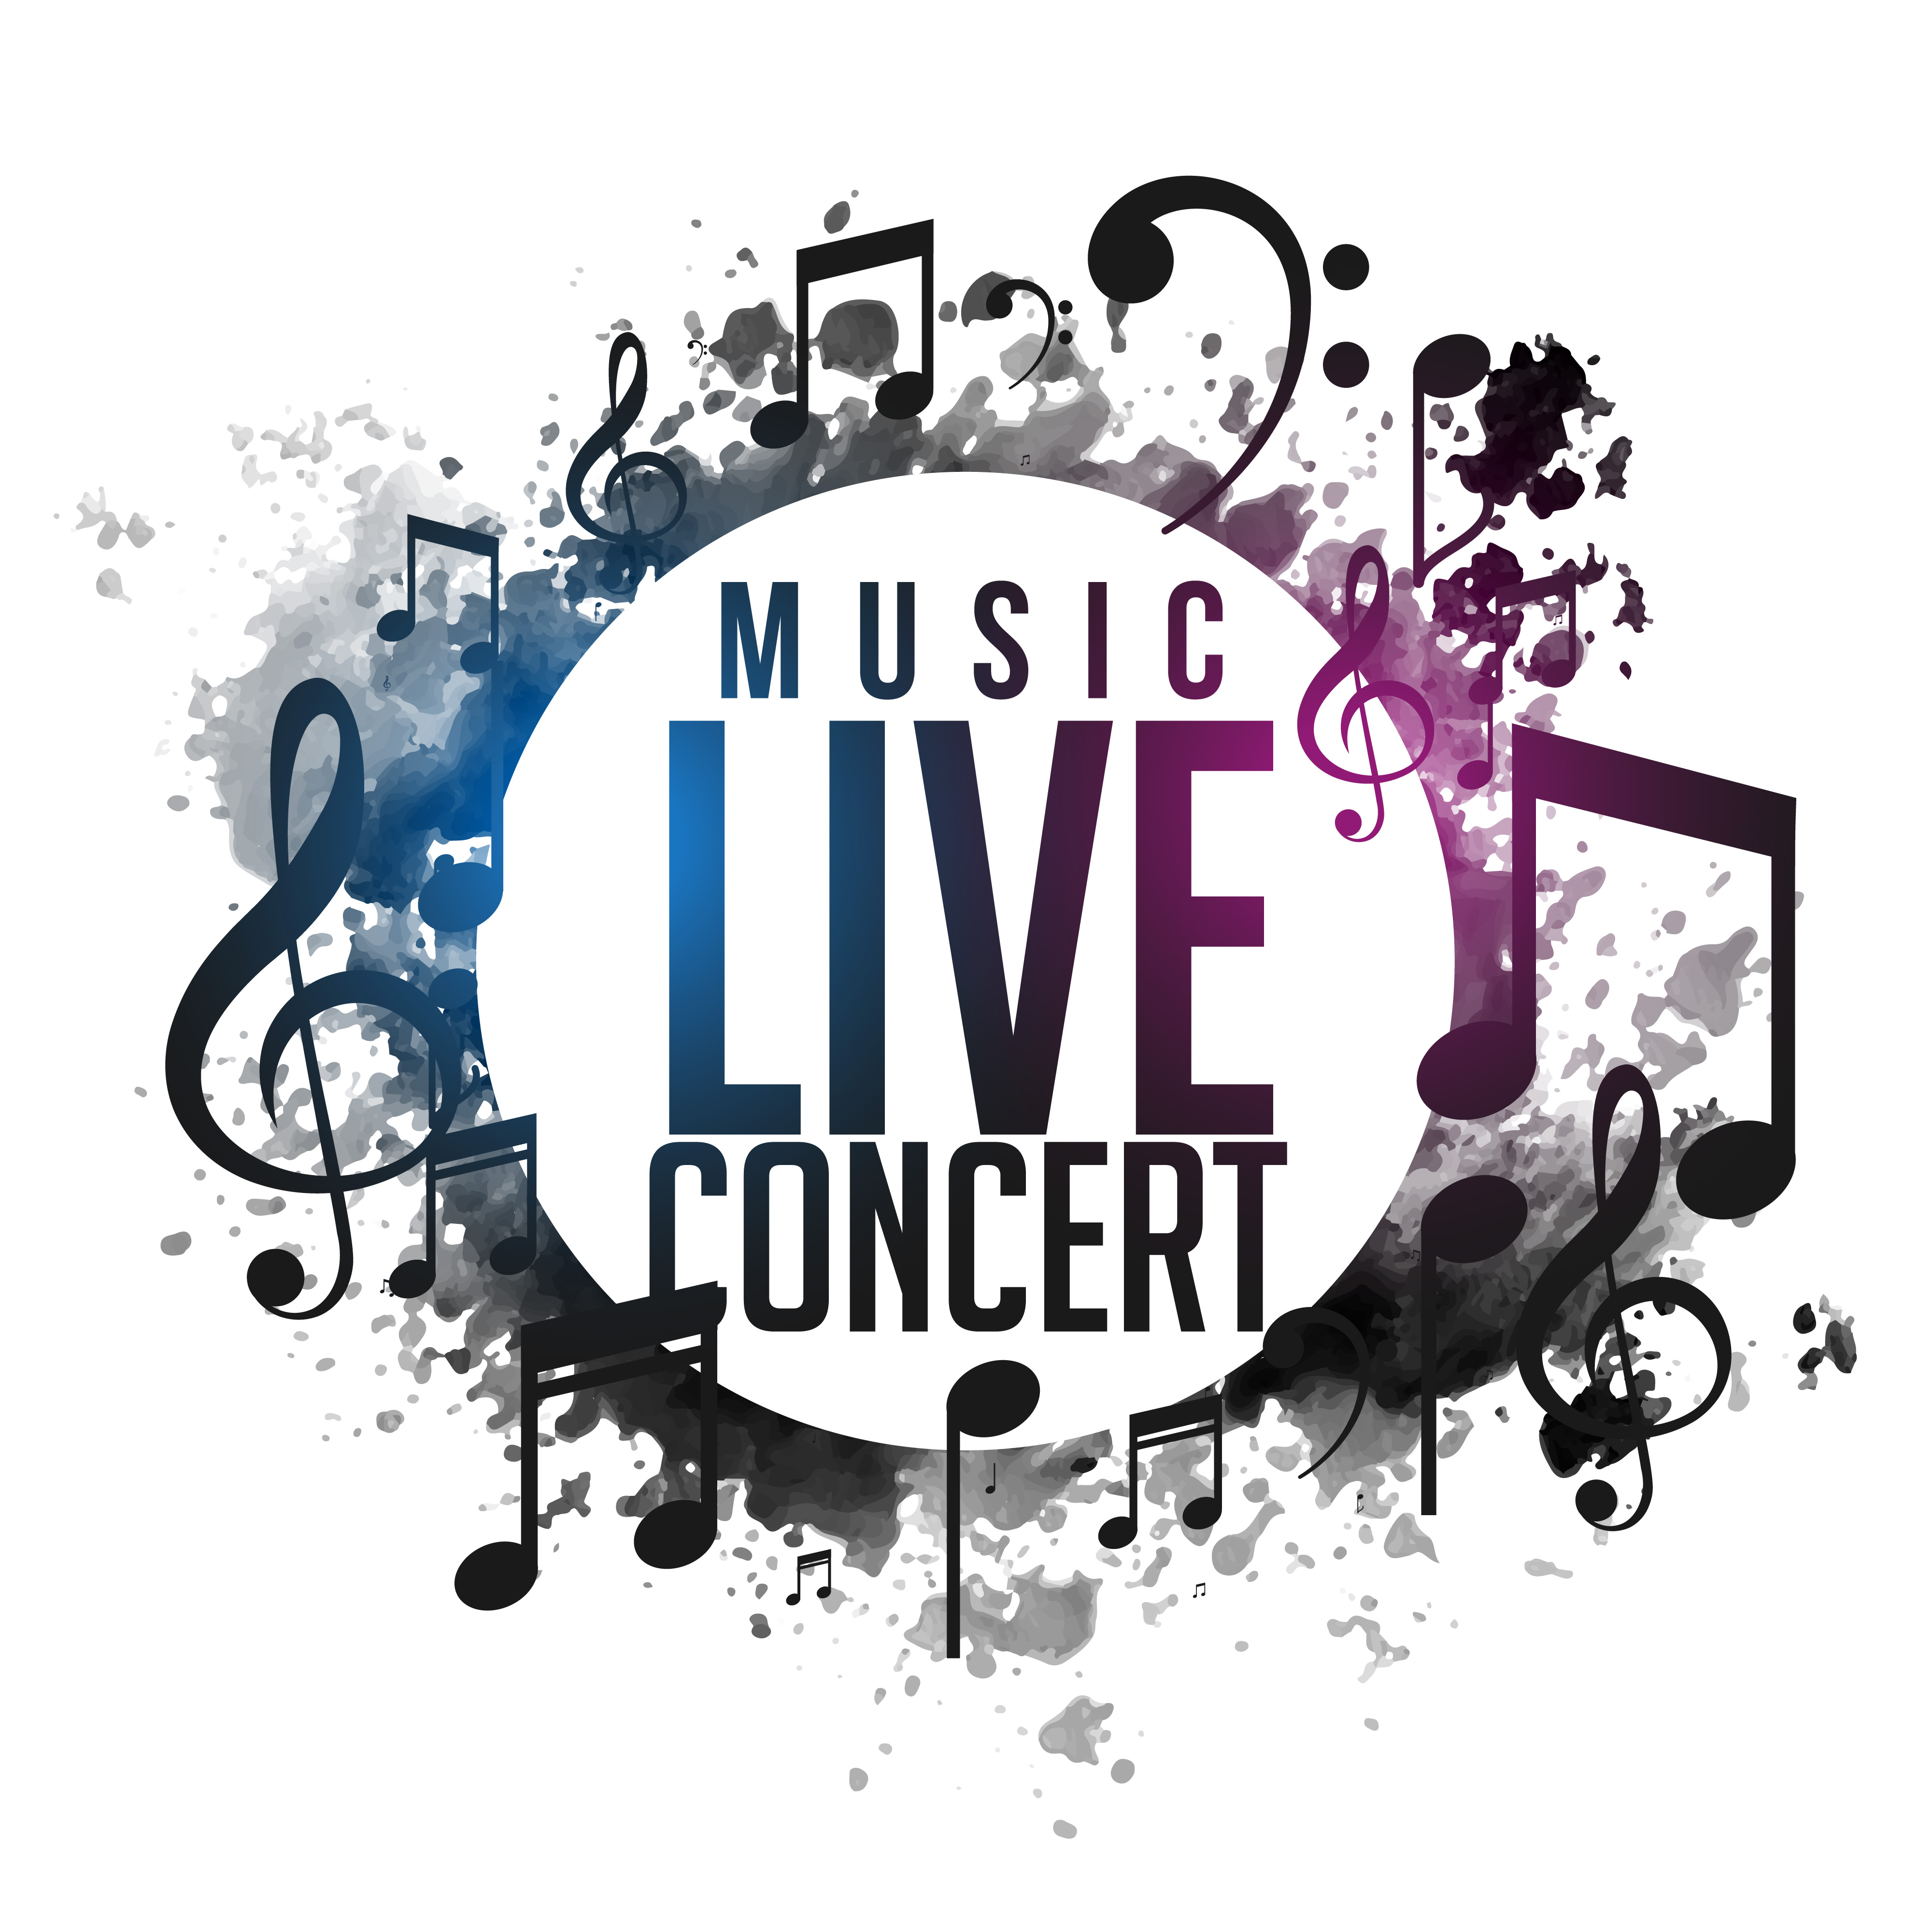 Arts Live Song Room: Live Music Poster Free Vector Art